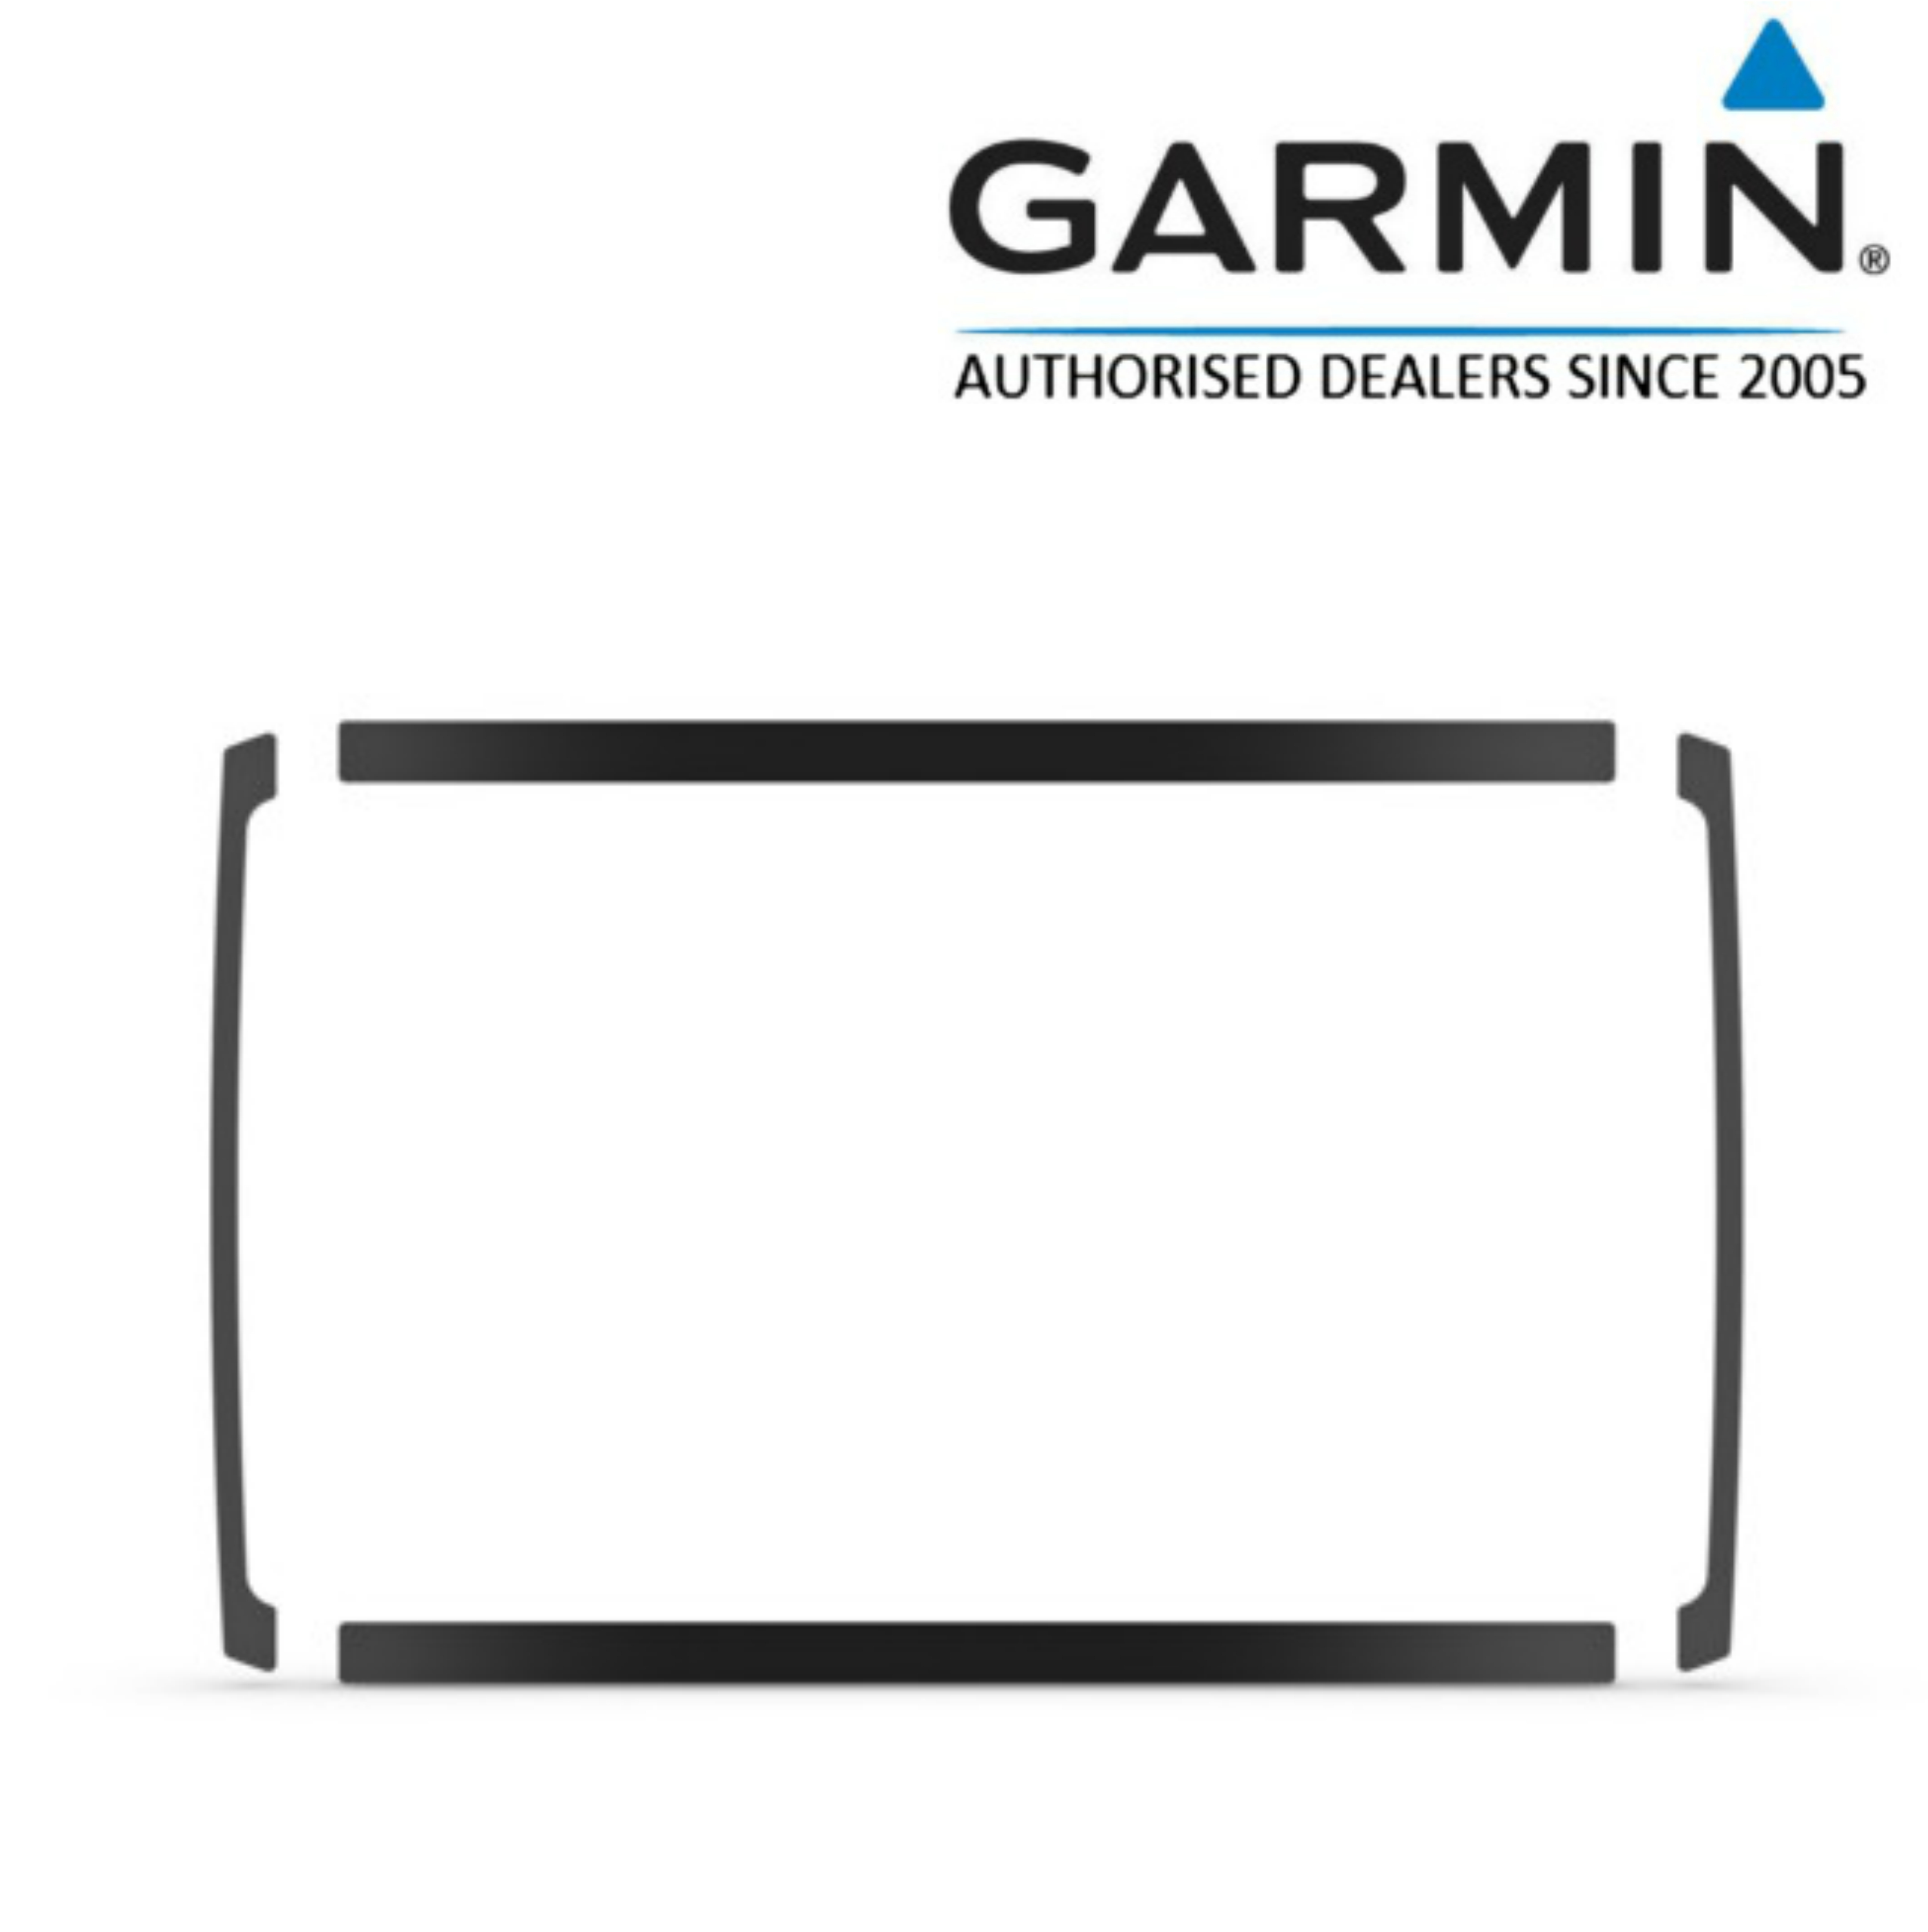 Garmin Flush Mount Kit|Easy Position|Marine Use|Ideal For ECHOMAP+ 75cv/75sv